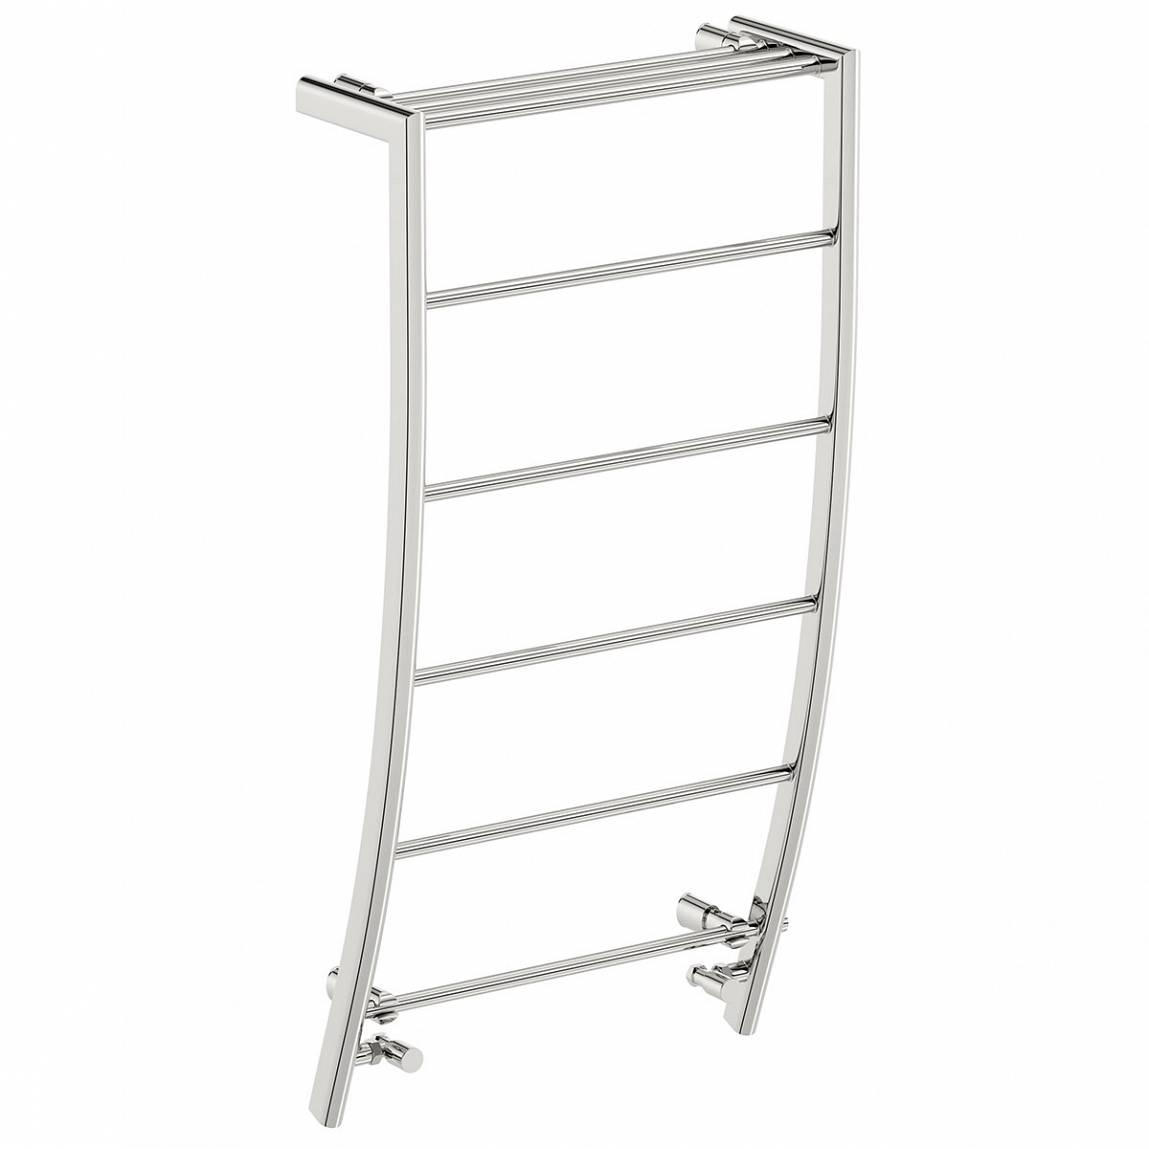 Image of Chrome Curved Heated Towel Rail 1200 x 600